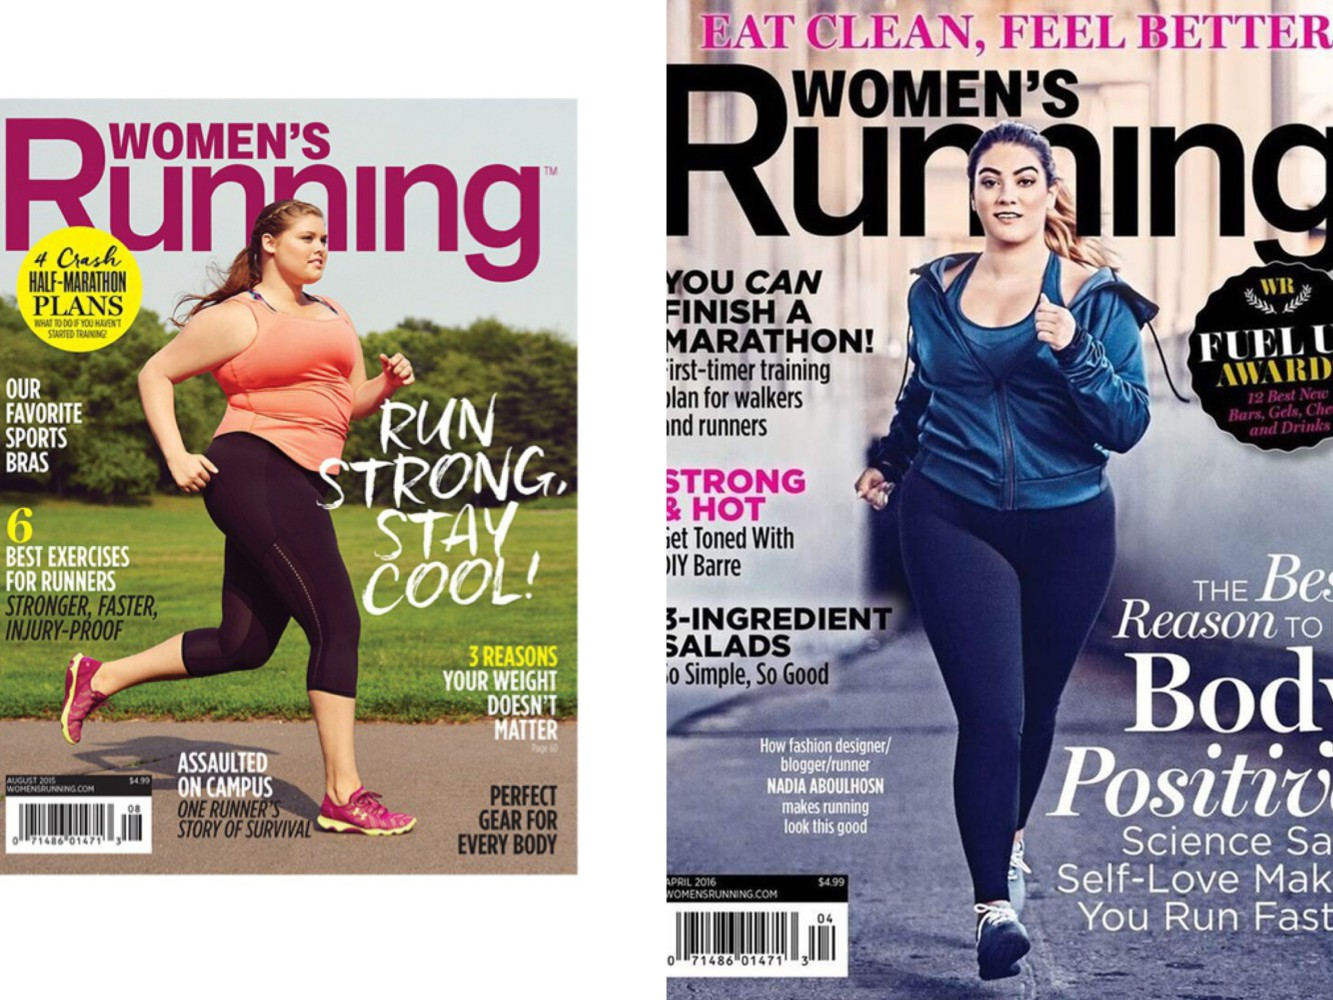 plus-size-models-Women's-running-magazine-cover-facts-on-plus-size-modelling